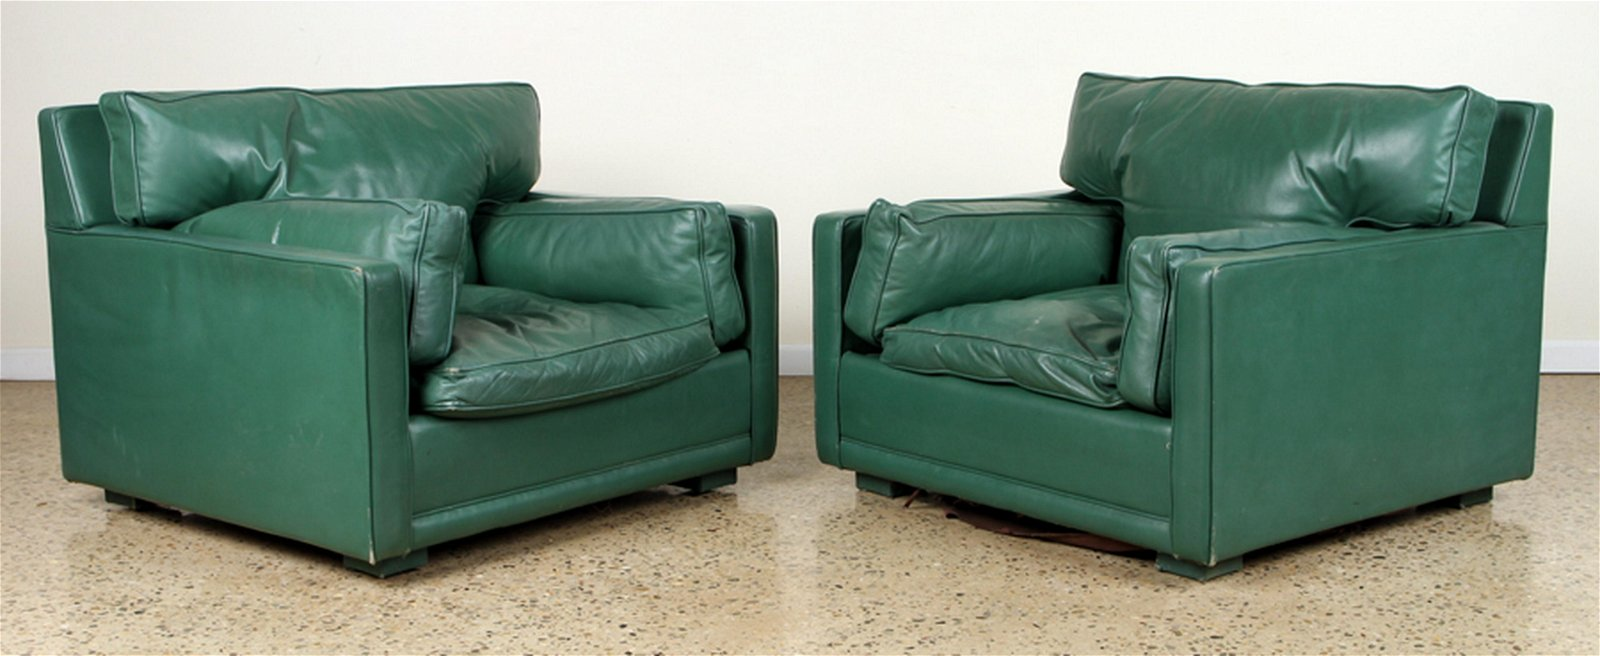 PAIR JACQUES ADNET STYLE LOUNGE CHAIRS C.1950